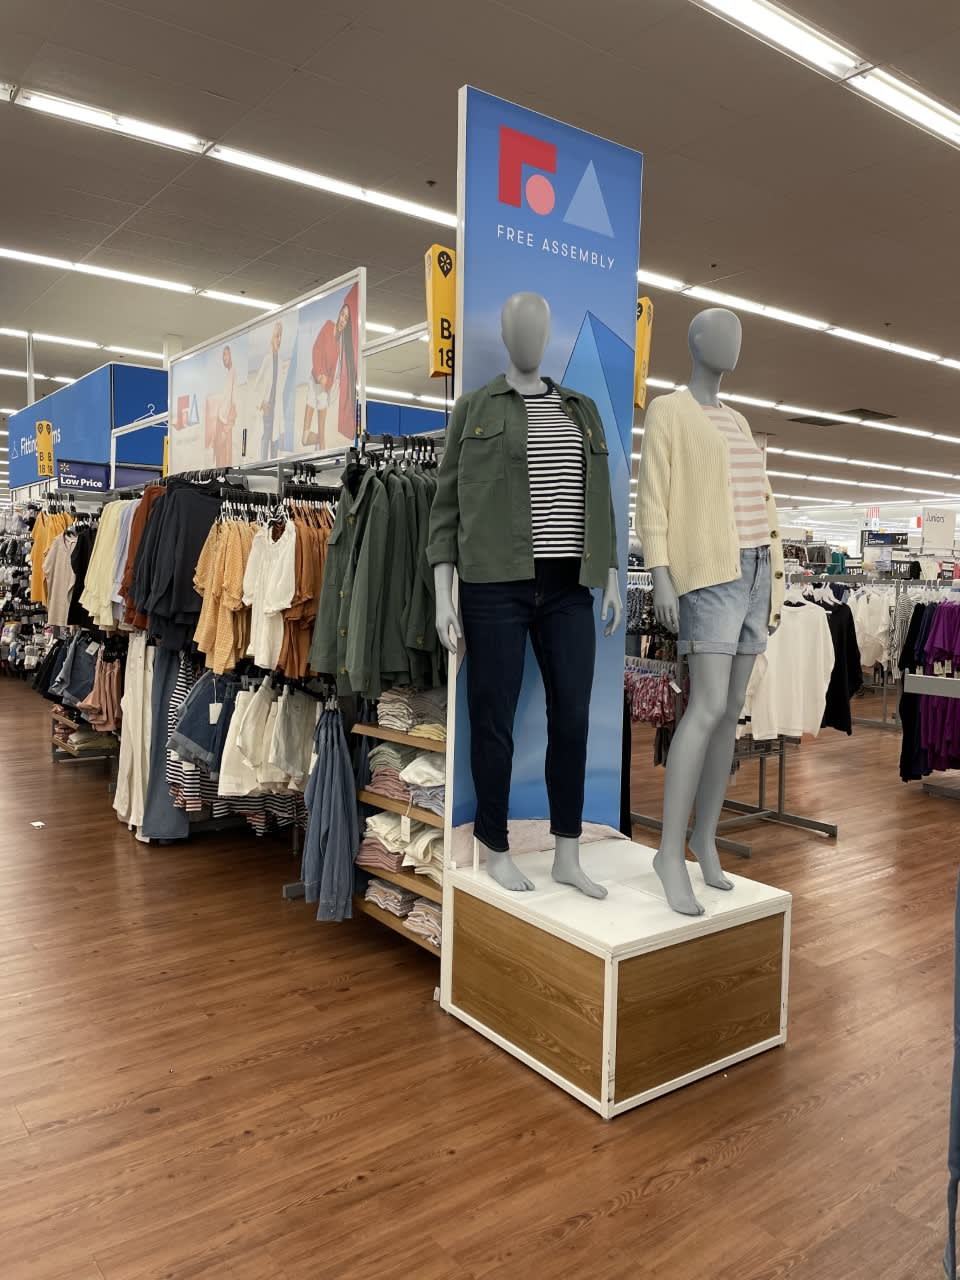 Walmart acquires virtual fitting room company Zeekit, as it makes push into trend thumbnail